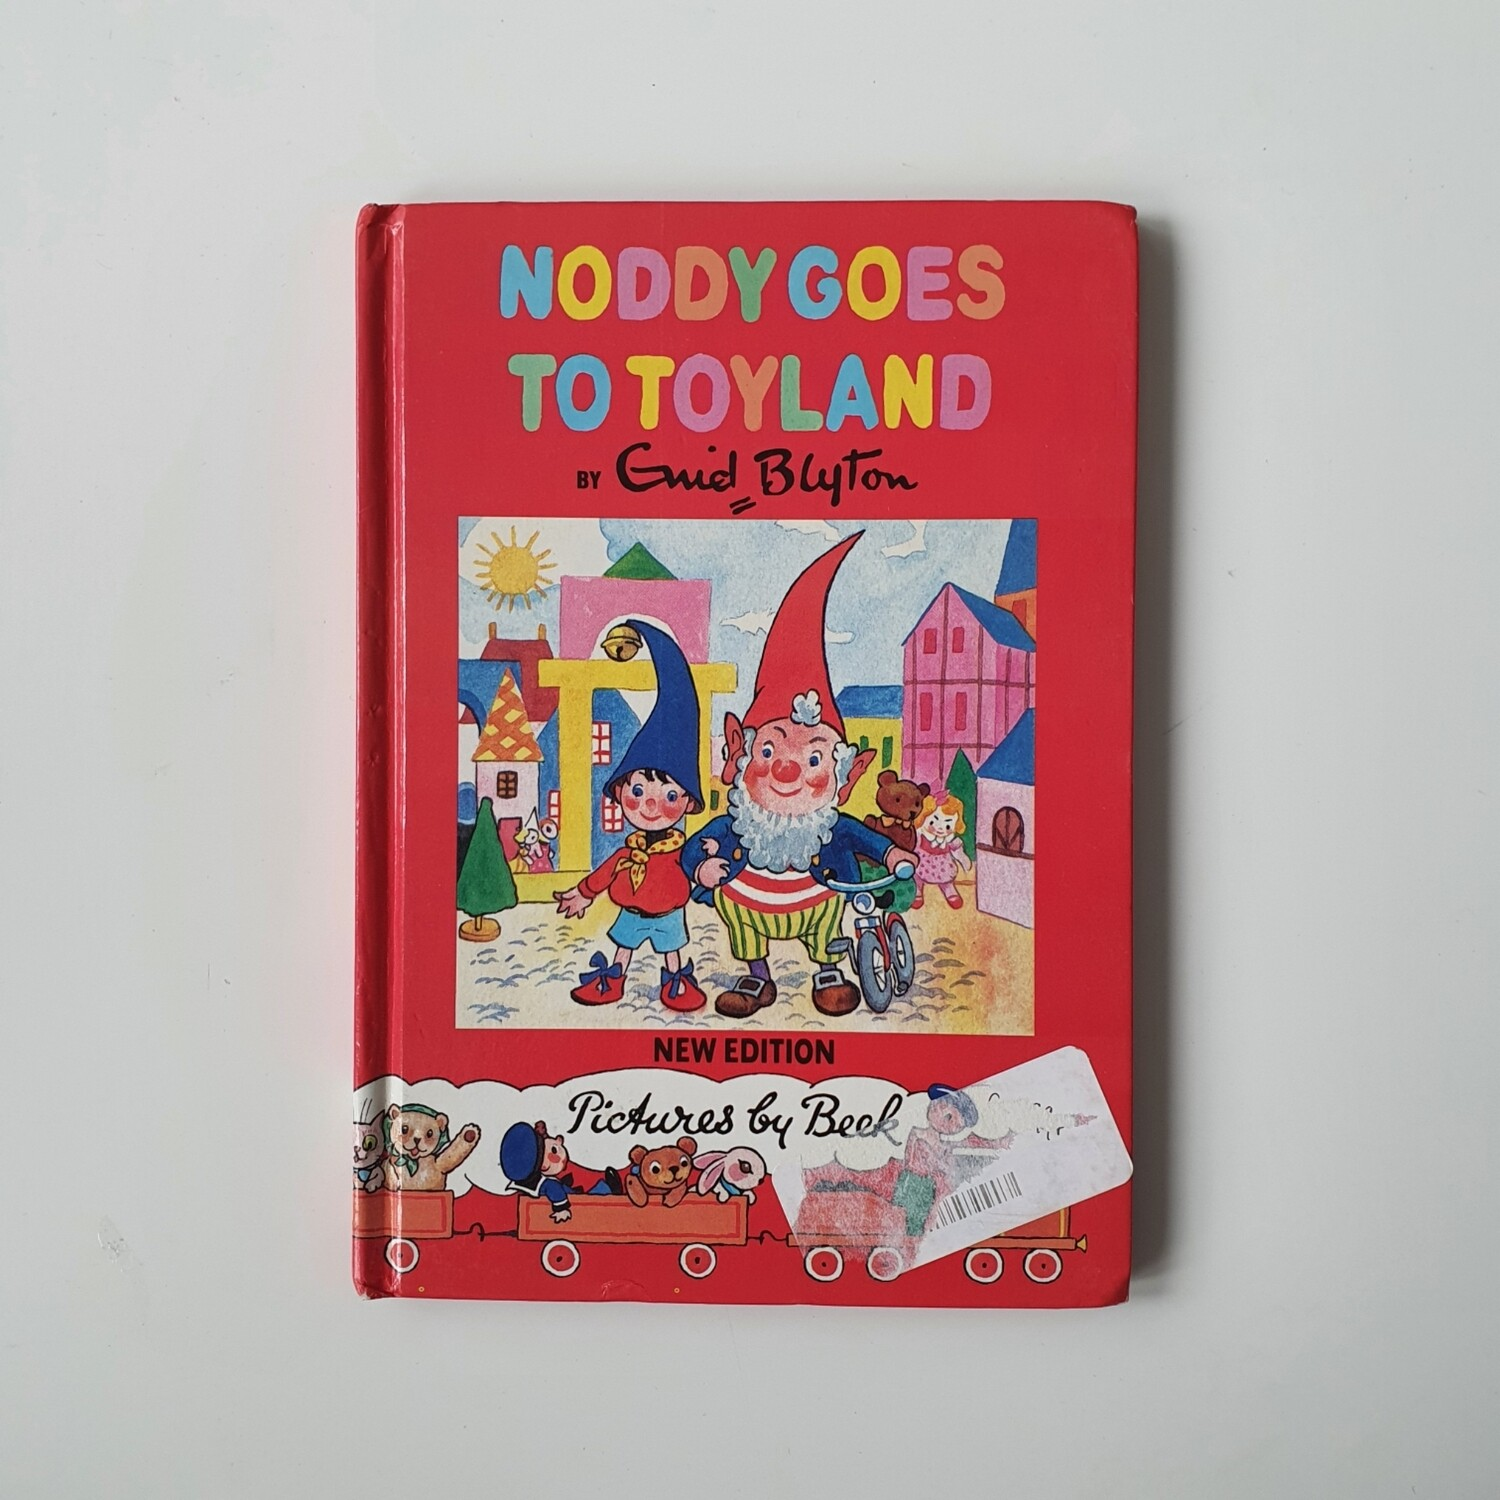 Noddy series - choose form a selection of books by Enid Blyton